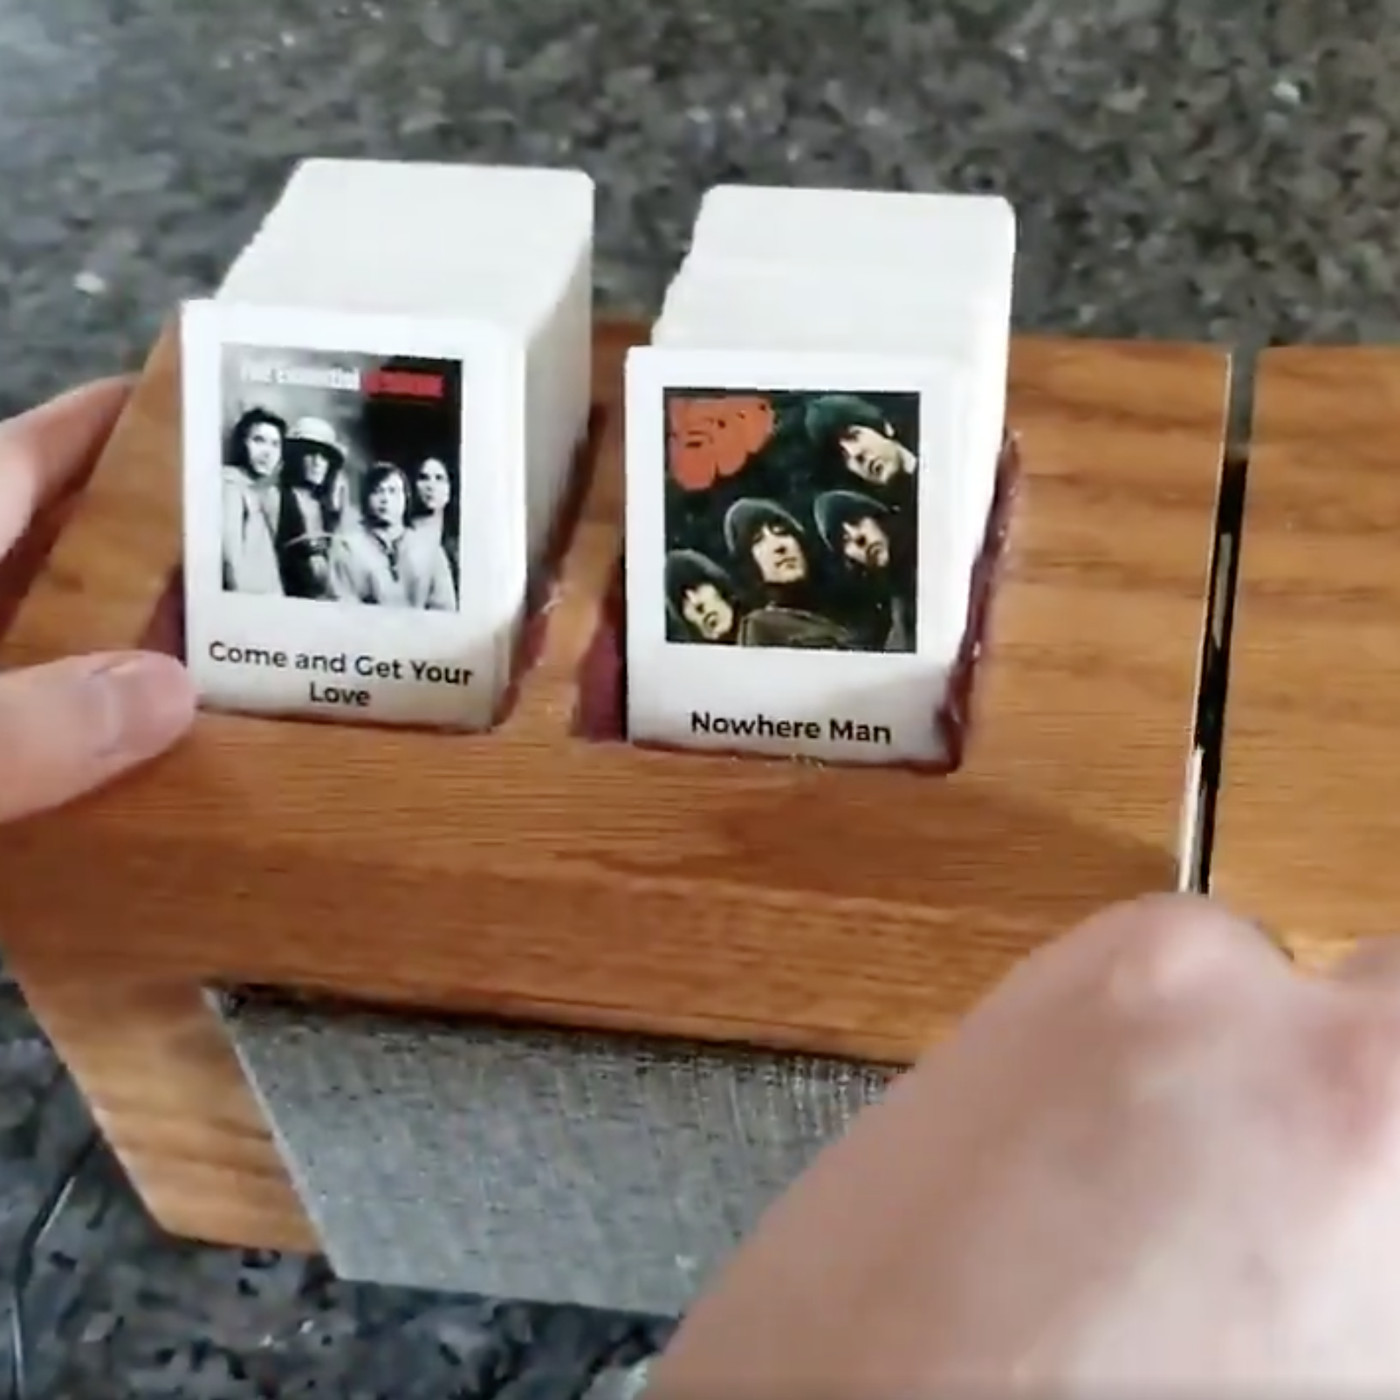 This awesome homemade jukebox is controlled by swipeable